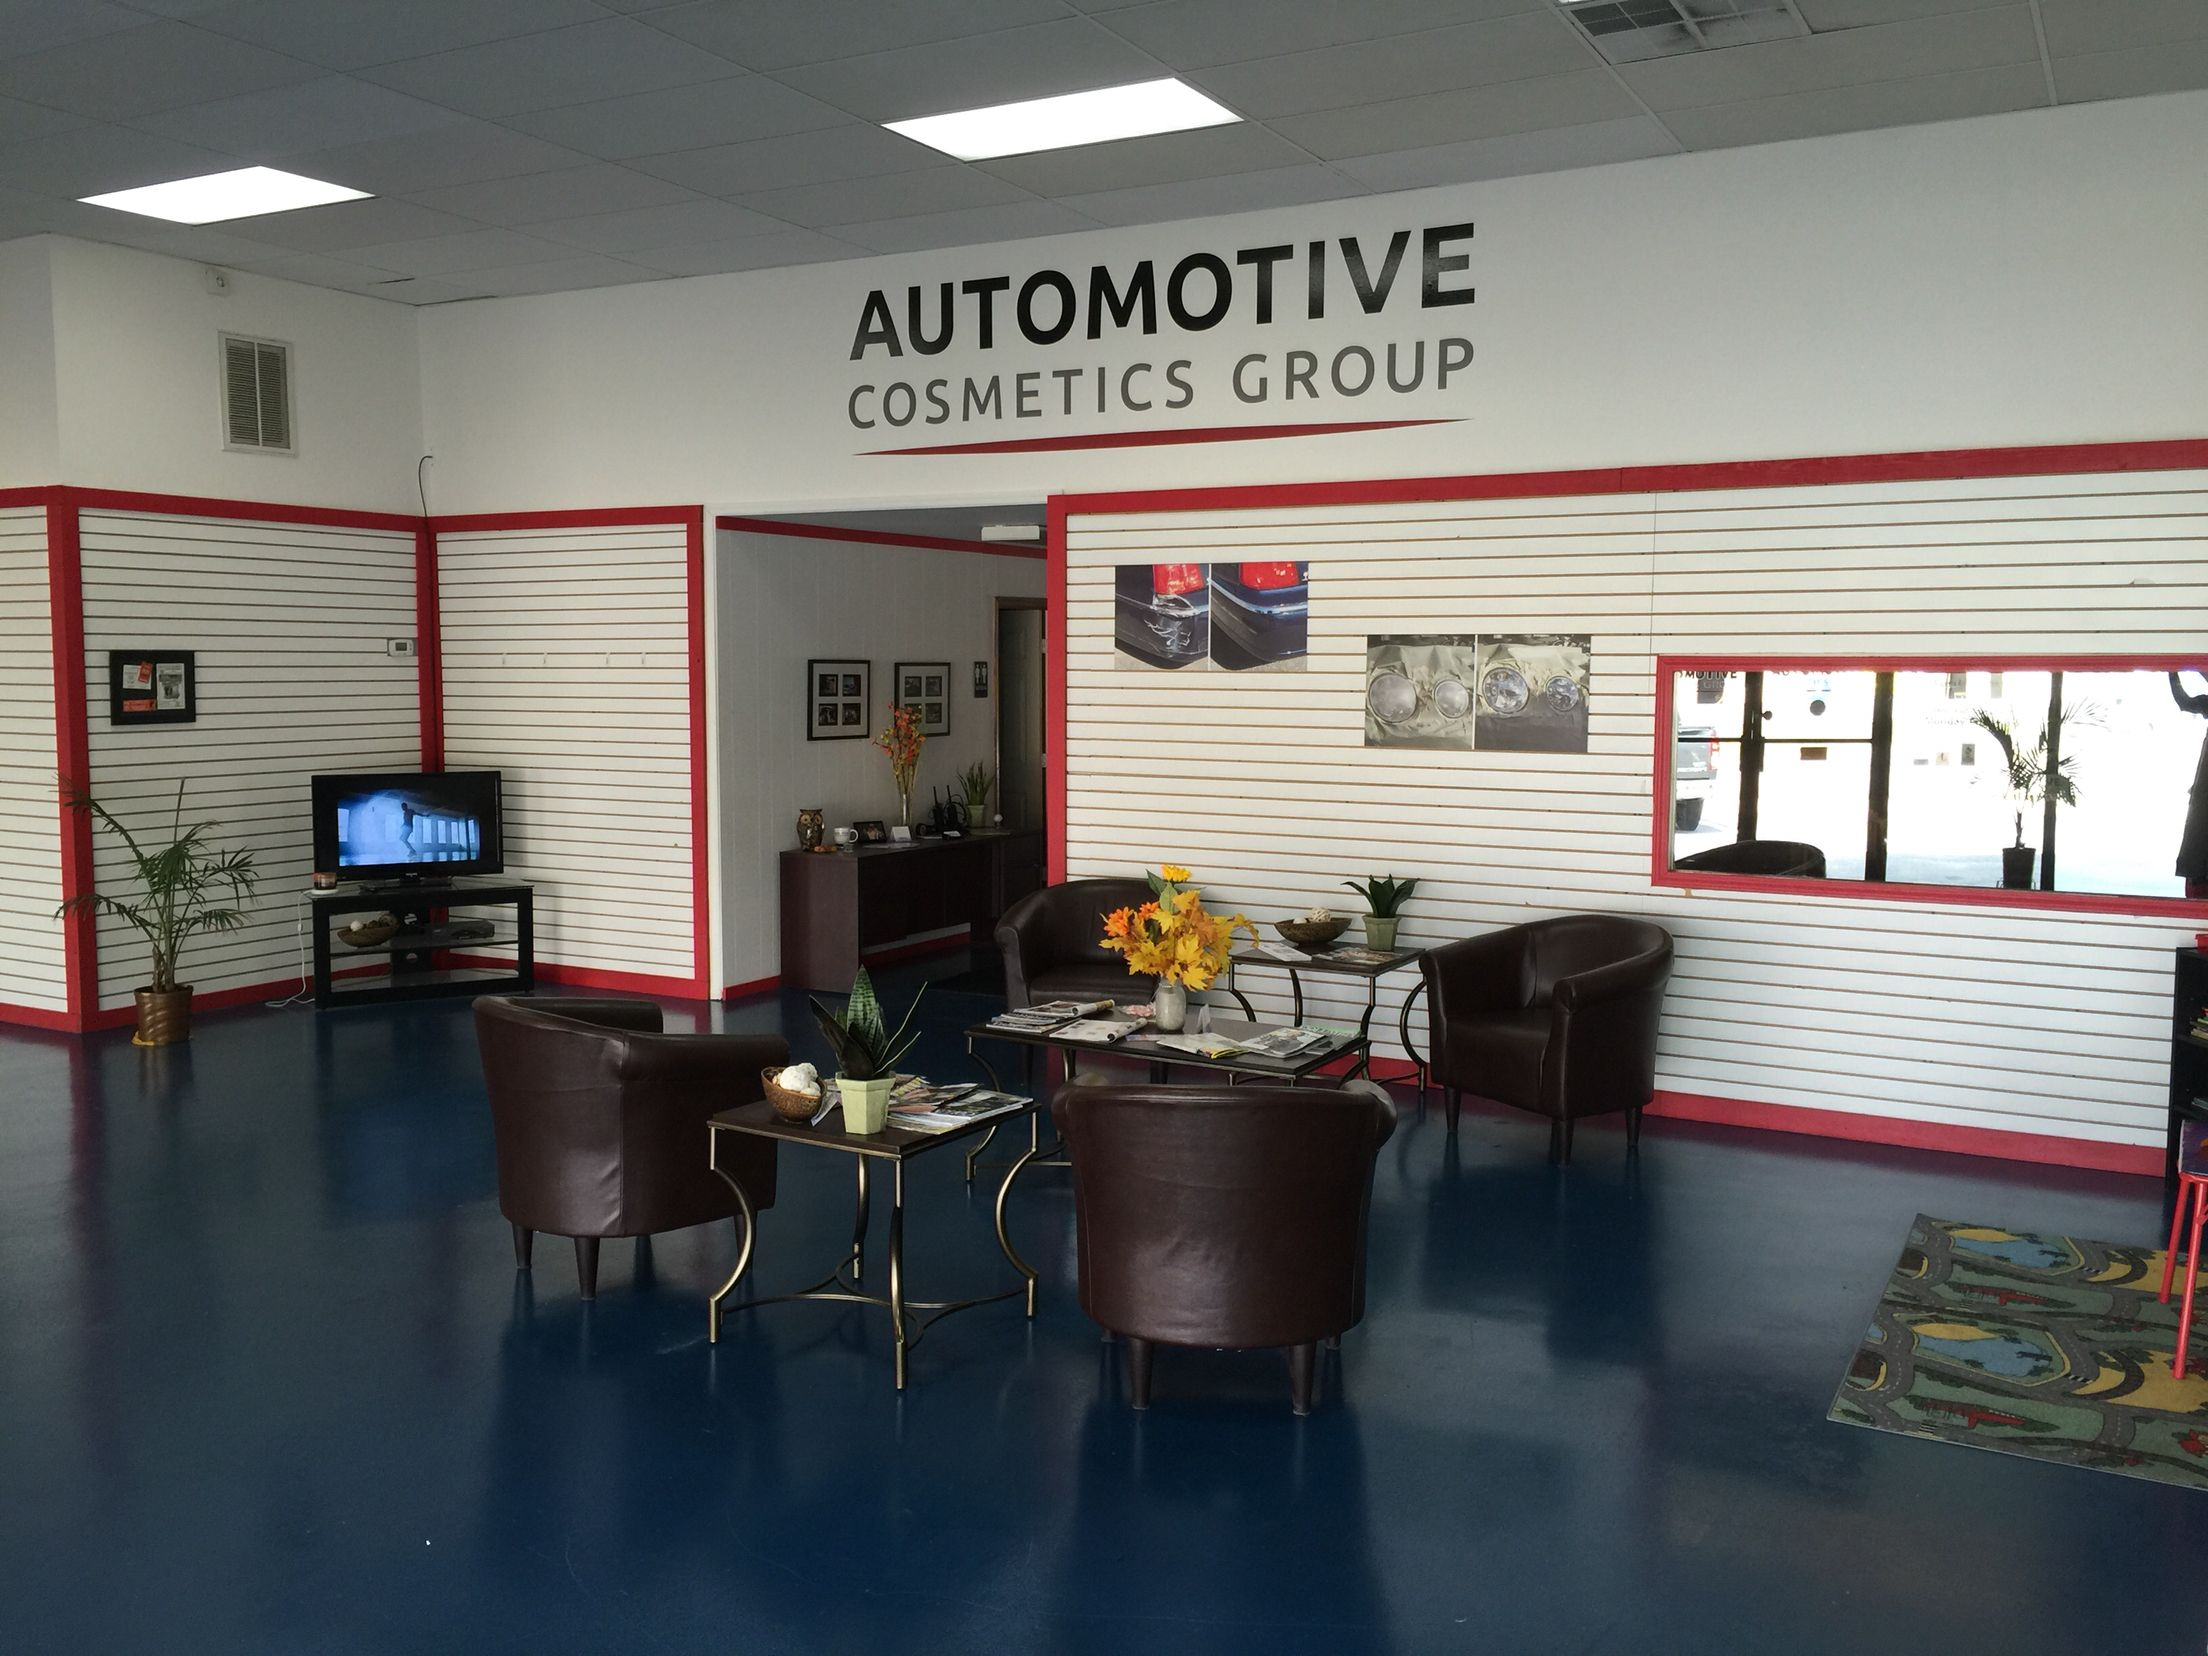 Inside Show Room Of Automotive Cosmetics Group Service Center Waiting Area Tv Showroom Waitingarea Waiting Area Automotive Shops Room